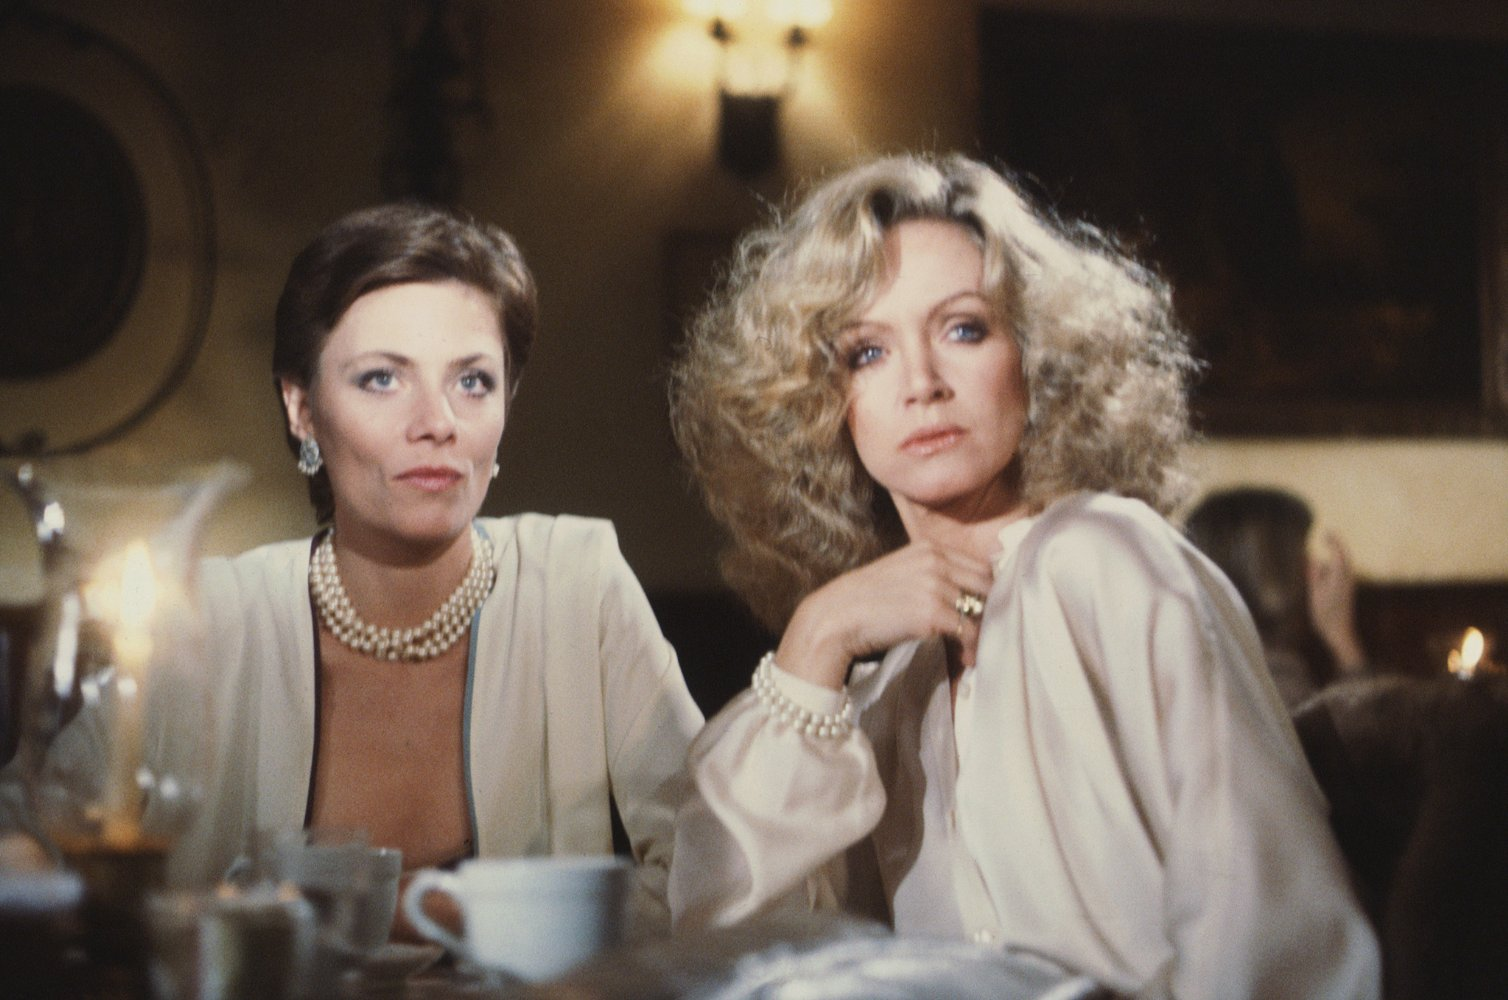 Abby Cunningham with other star from the Knots Landing. They are looking other suspiciously.